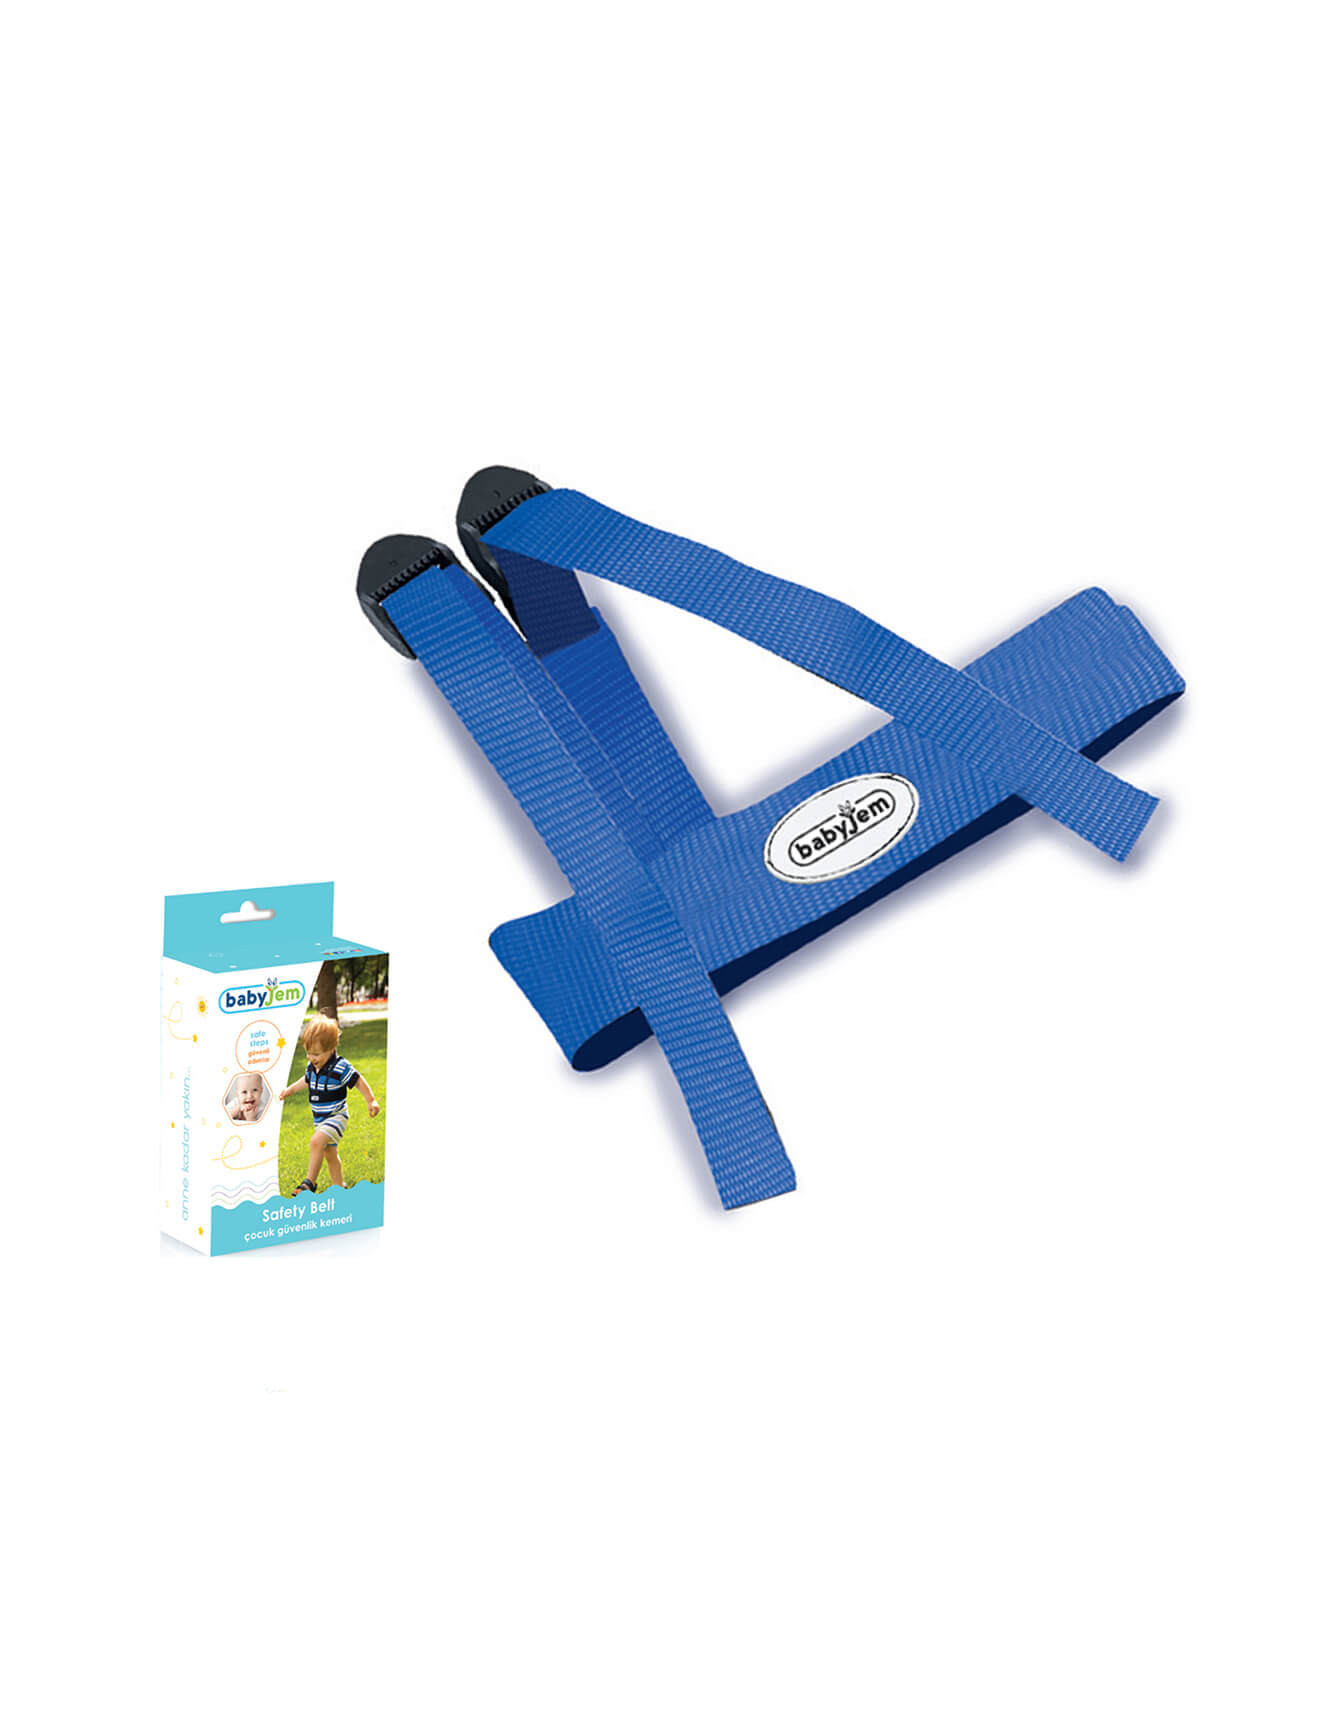 Travel Stroller Price In Pakistan Babyjem Safety Belt For Baby Blue Online In Pakistan